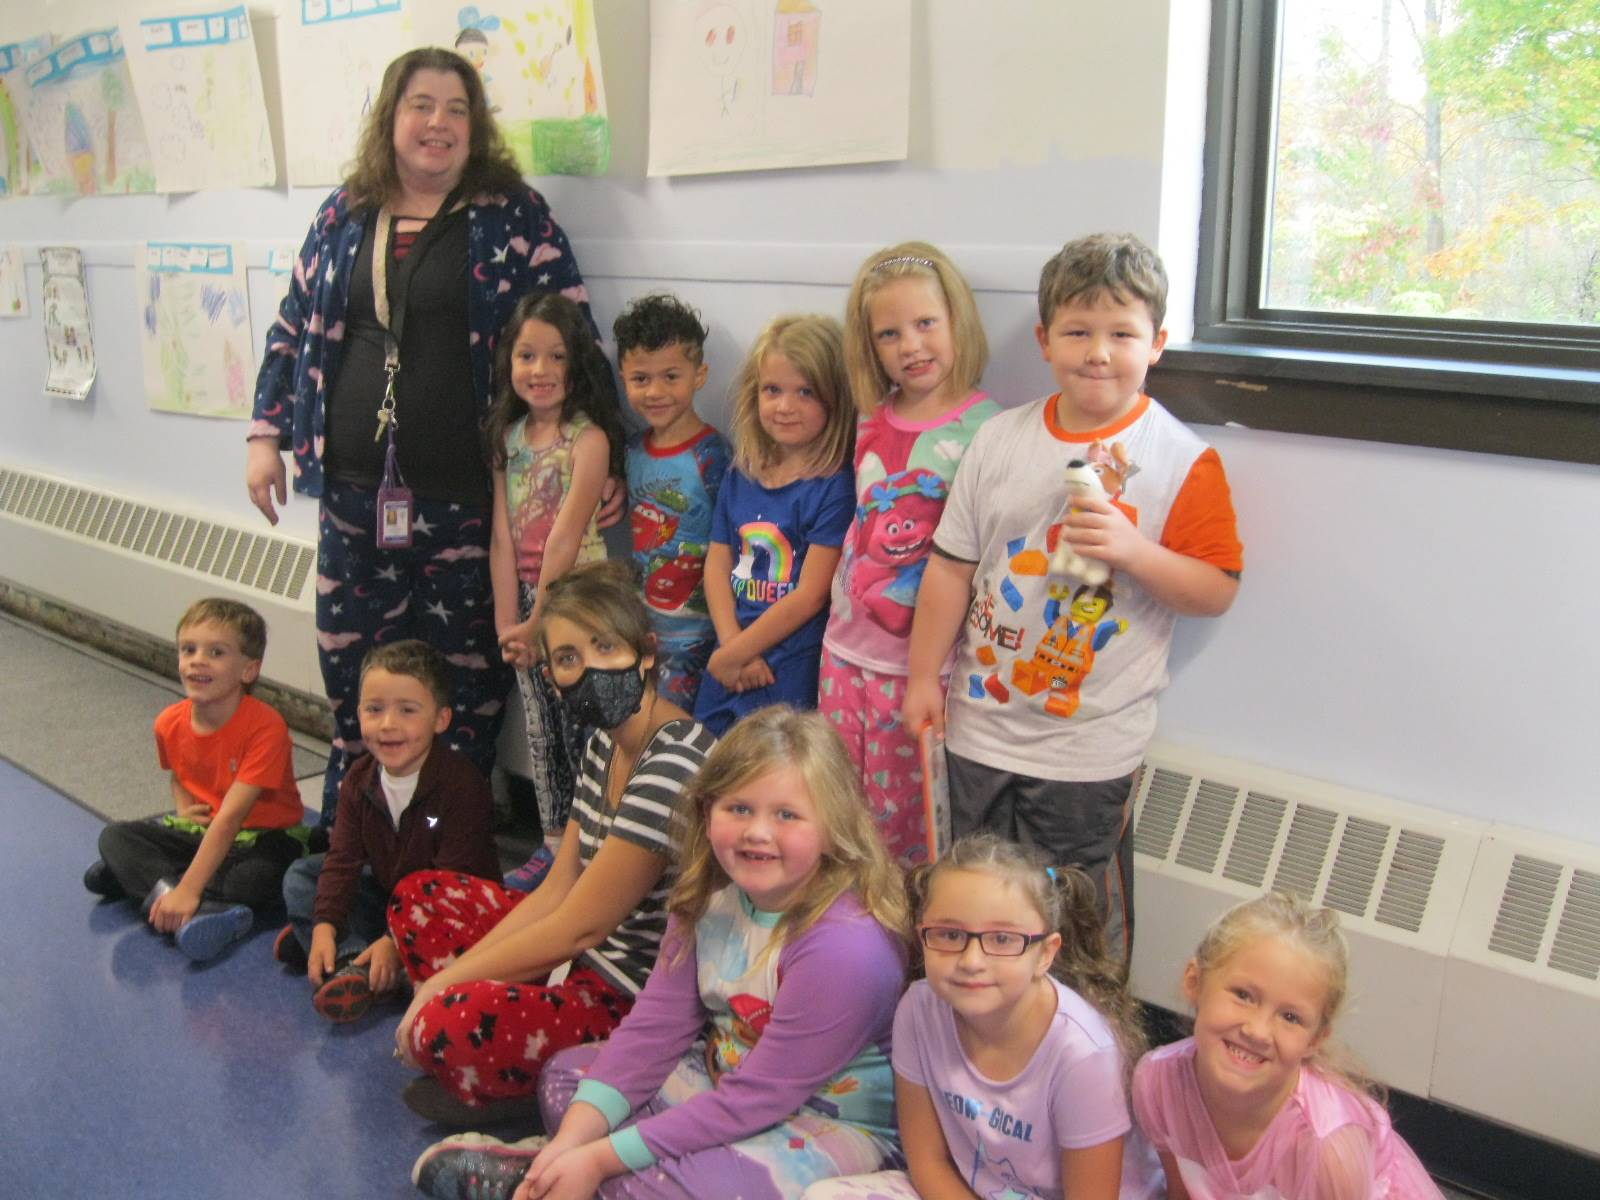 2 teachers and several students in PJS.